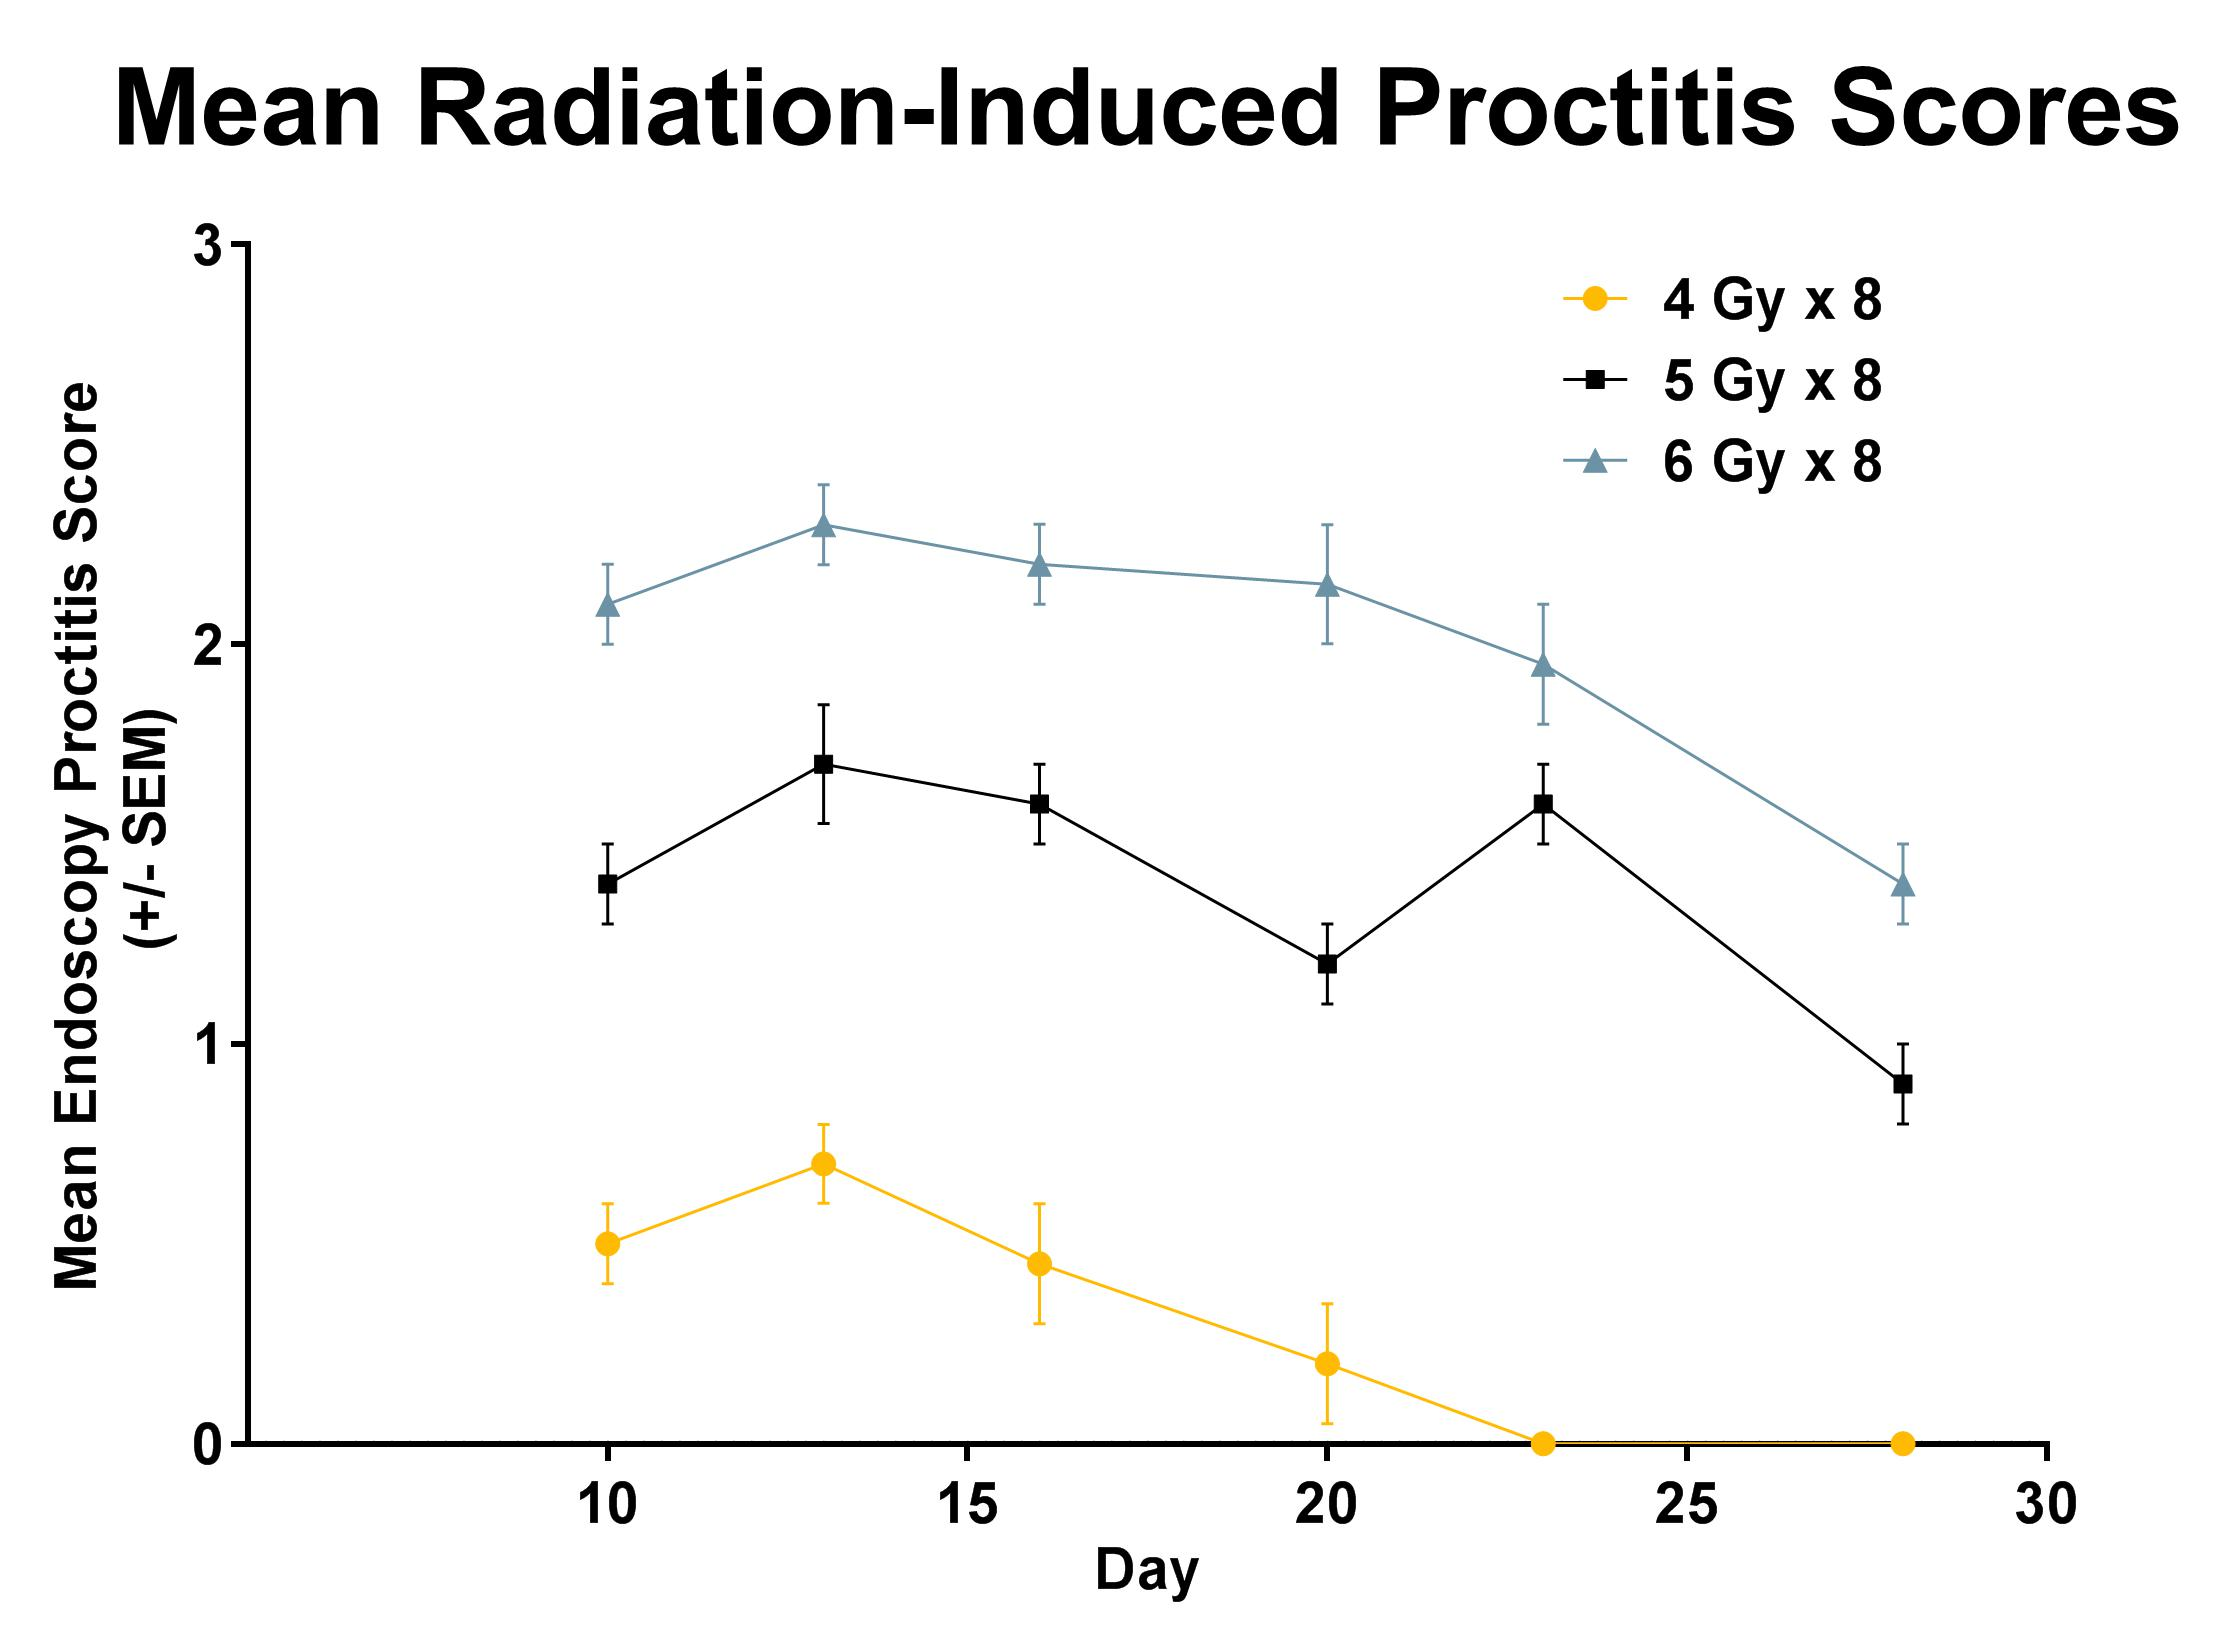 Disease Course of Proctitis resulting from fractionated radiation exposure